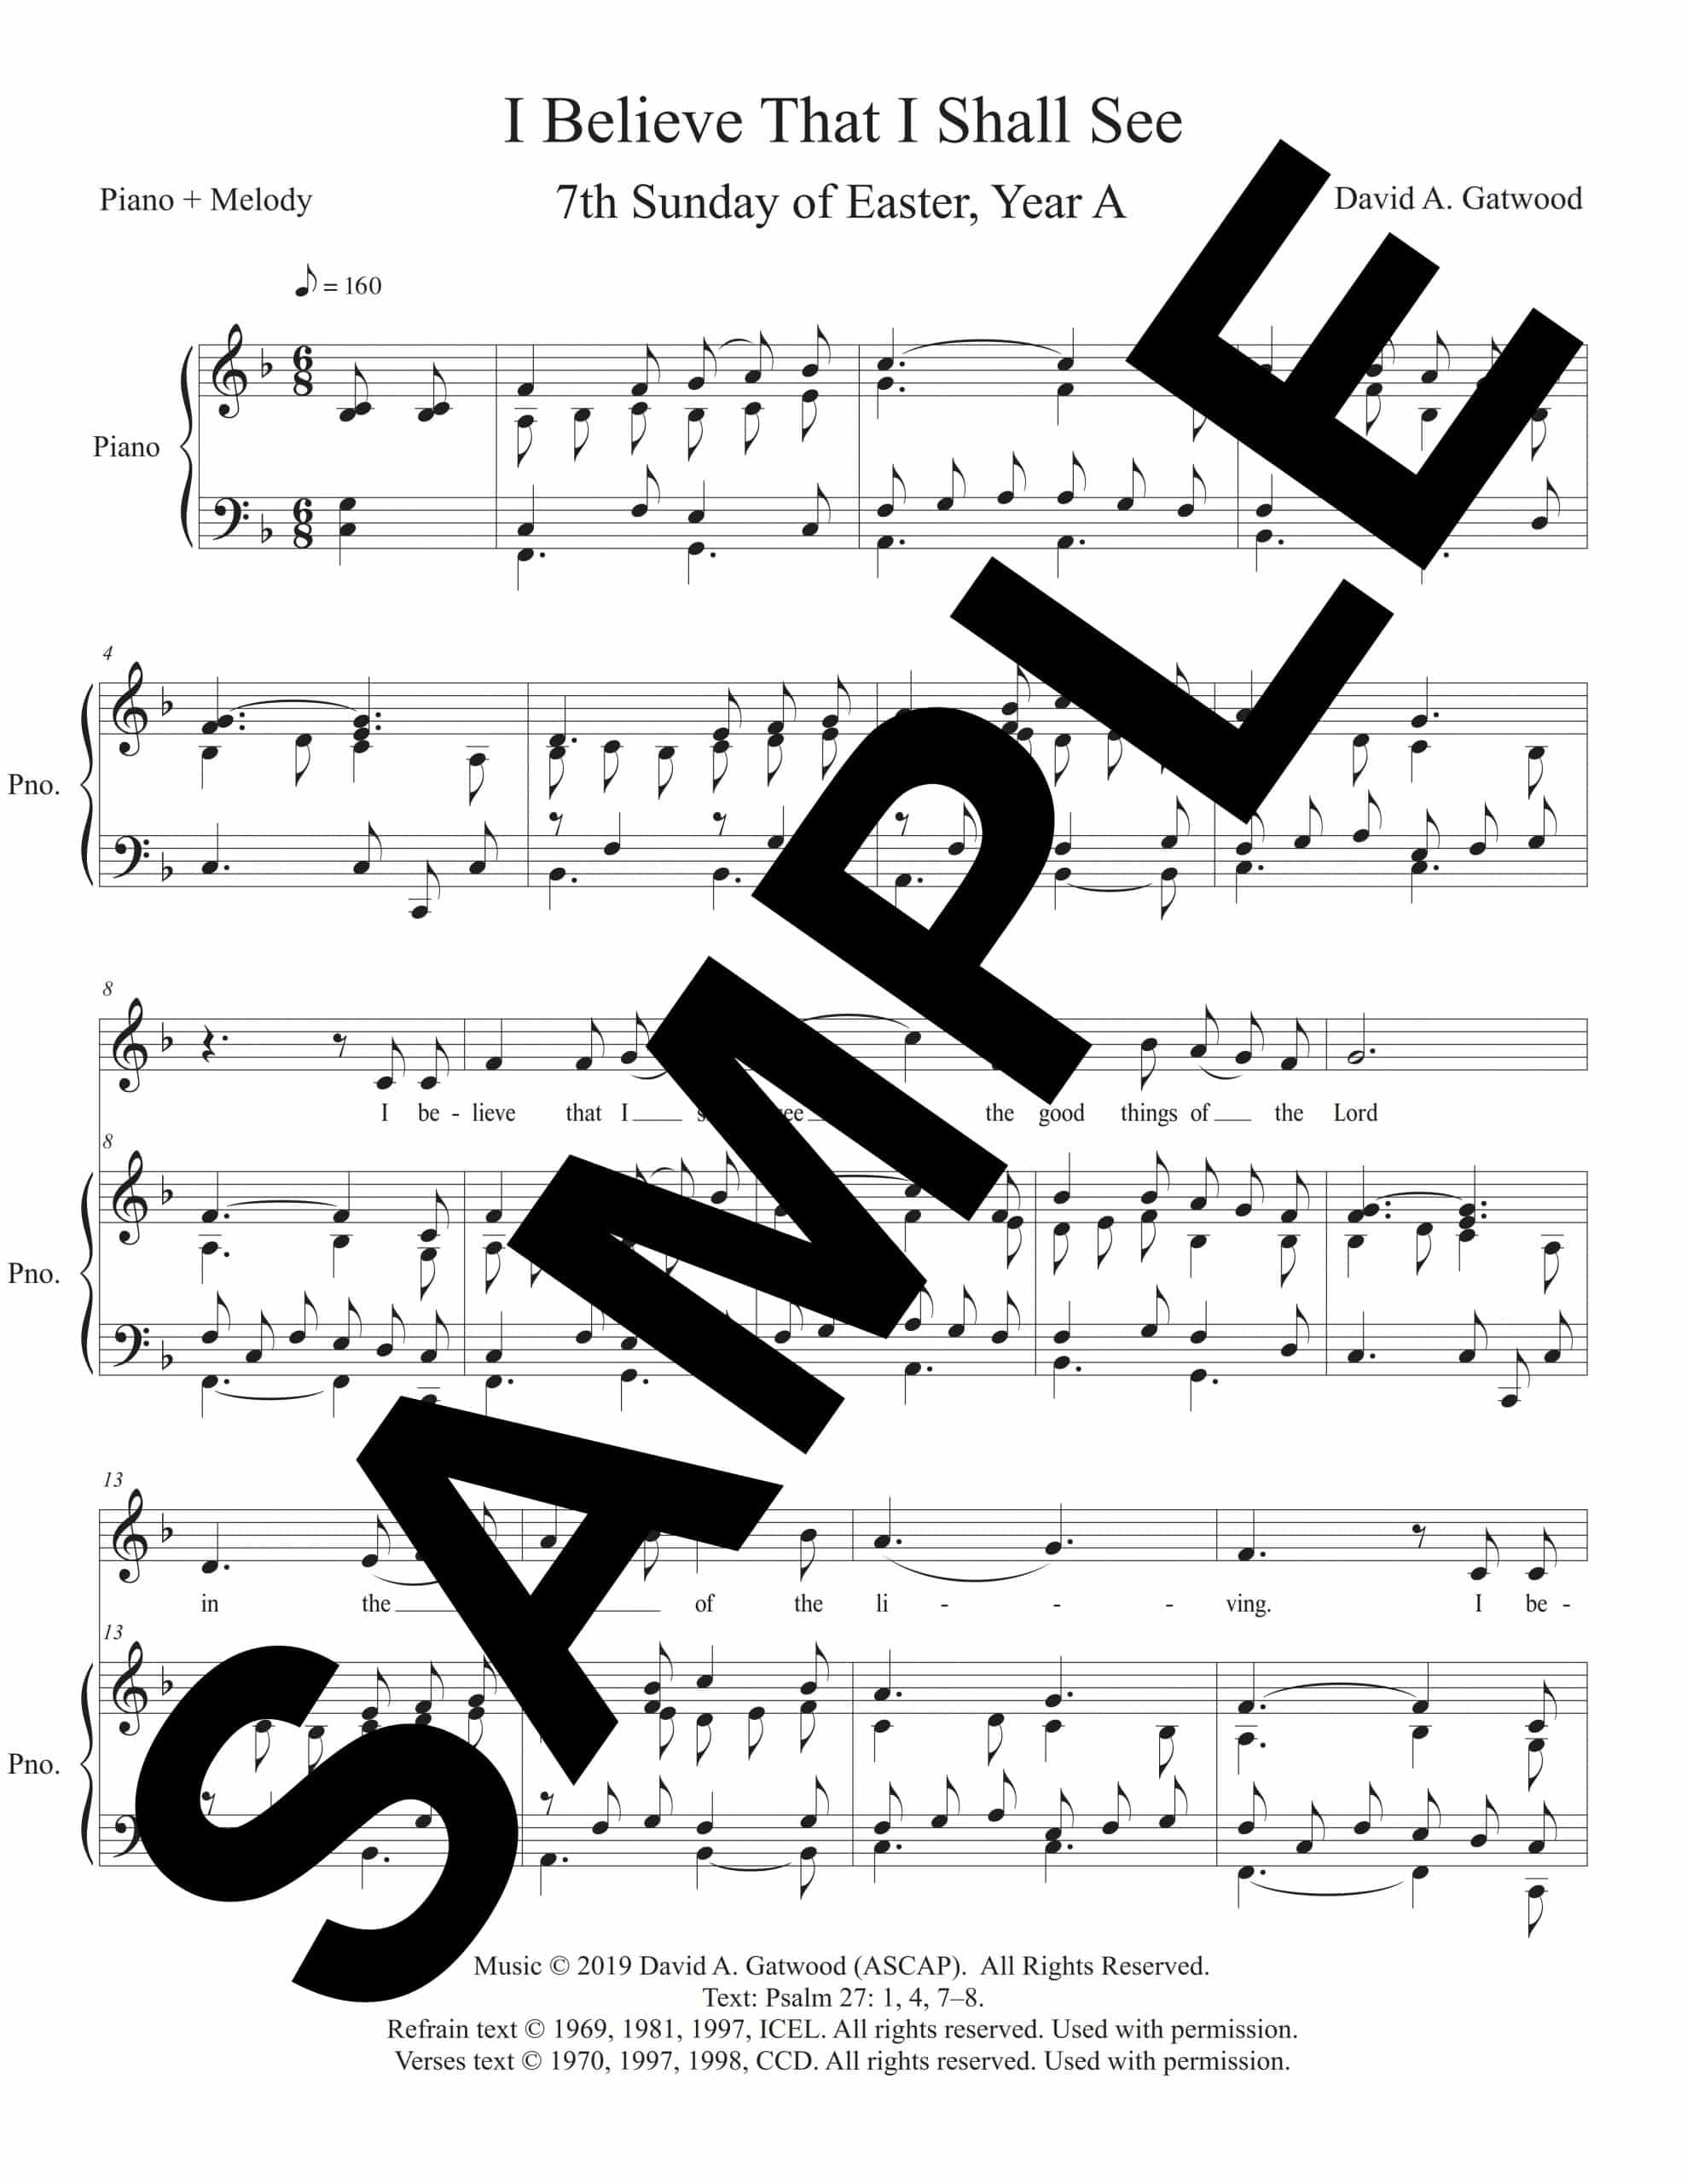 Psalm 27 I Believe That I Shall See Gatwood Sample PianoMelody scaled